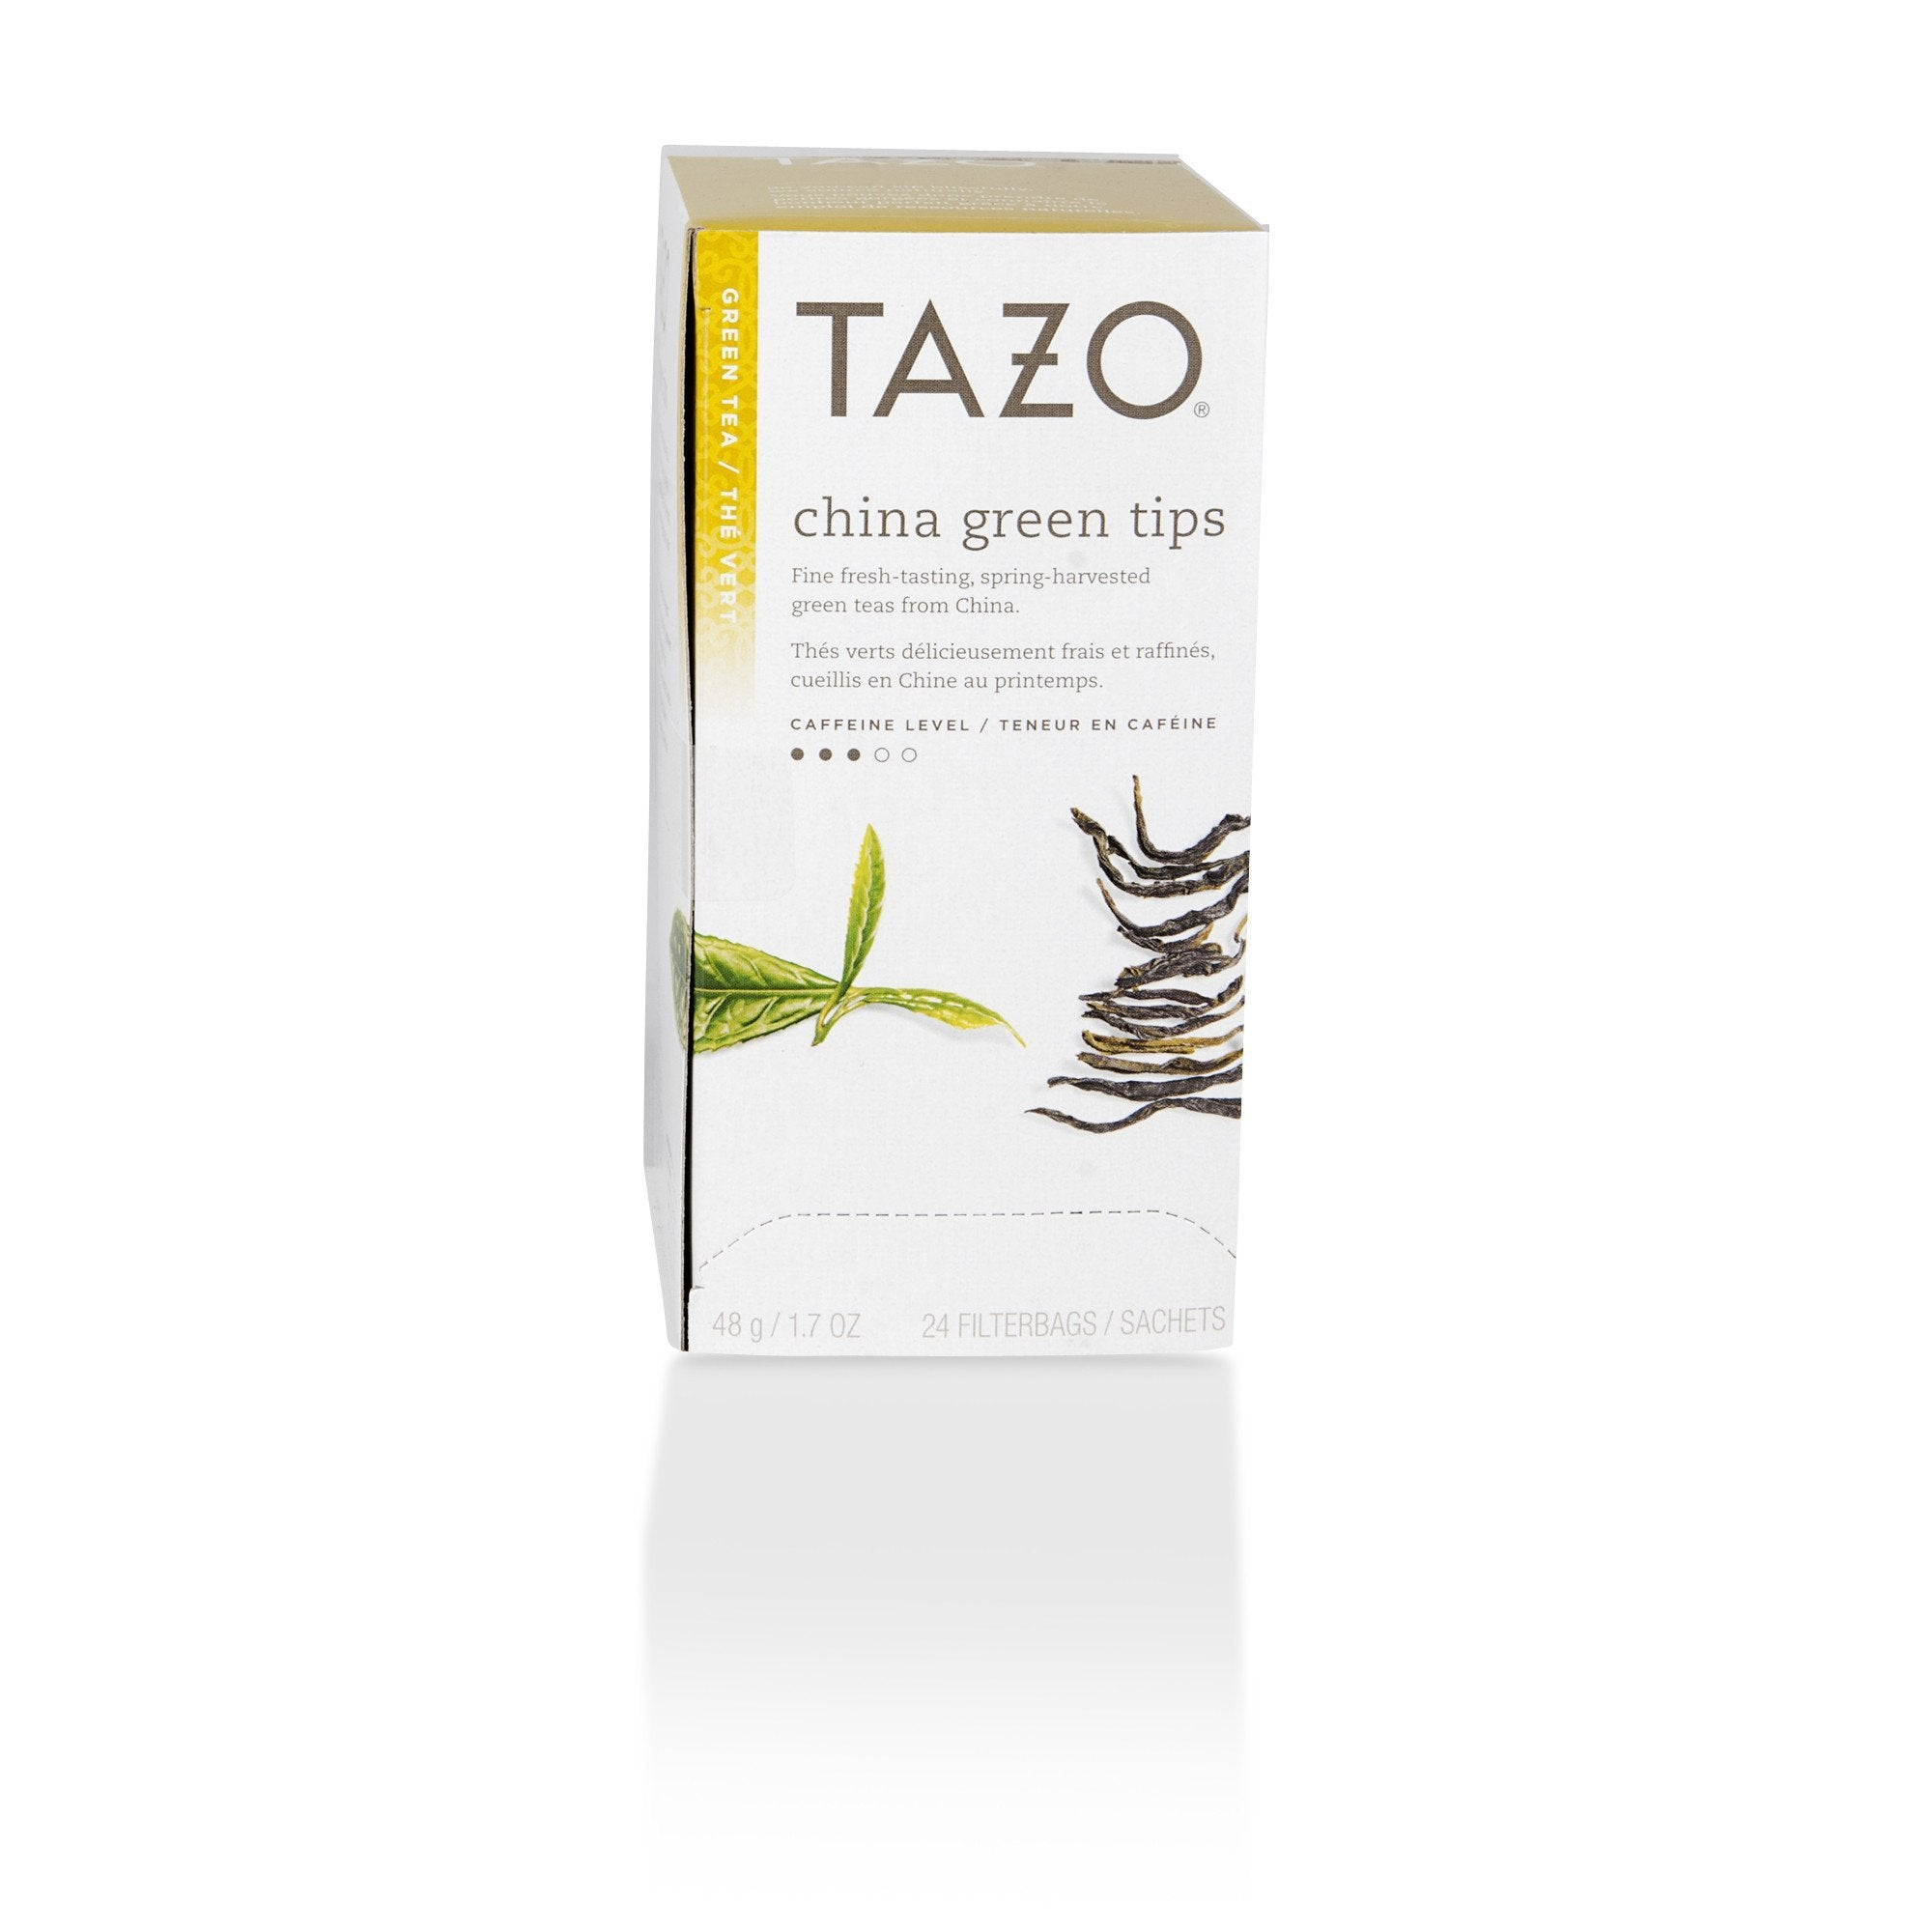 Tazo Teas - China Green Tips